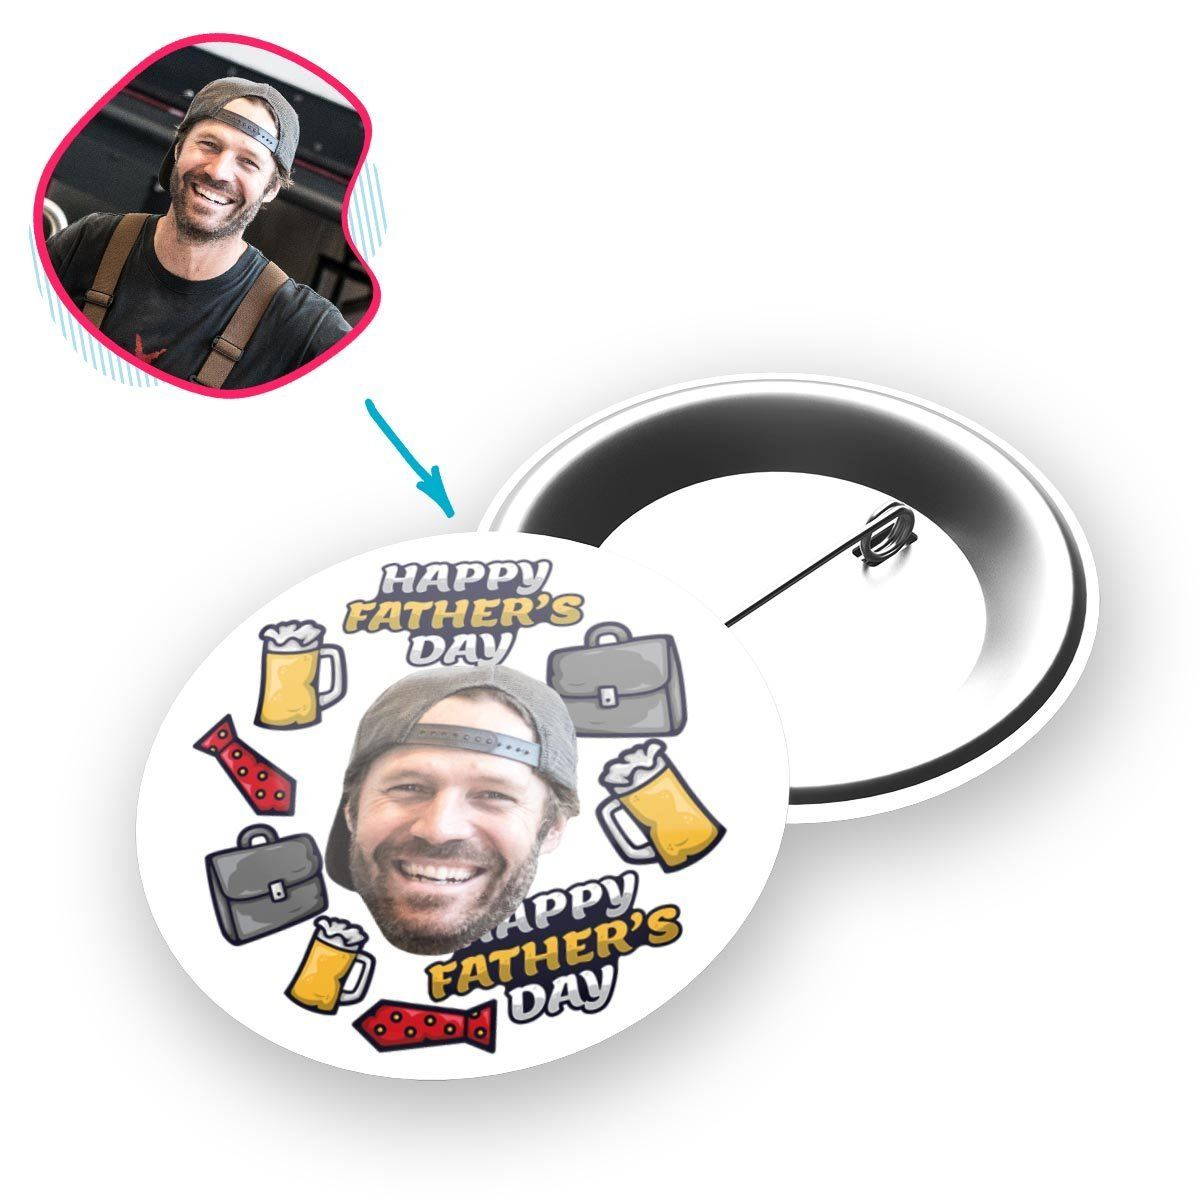 White Fathers Day personalized pin with photo of face printed on it